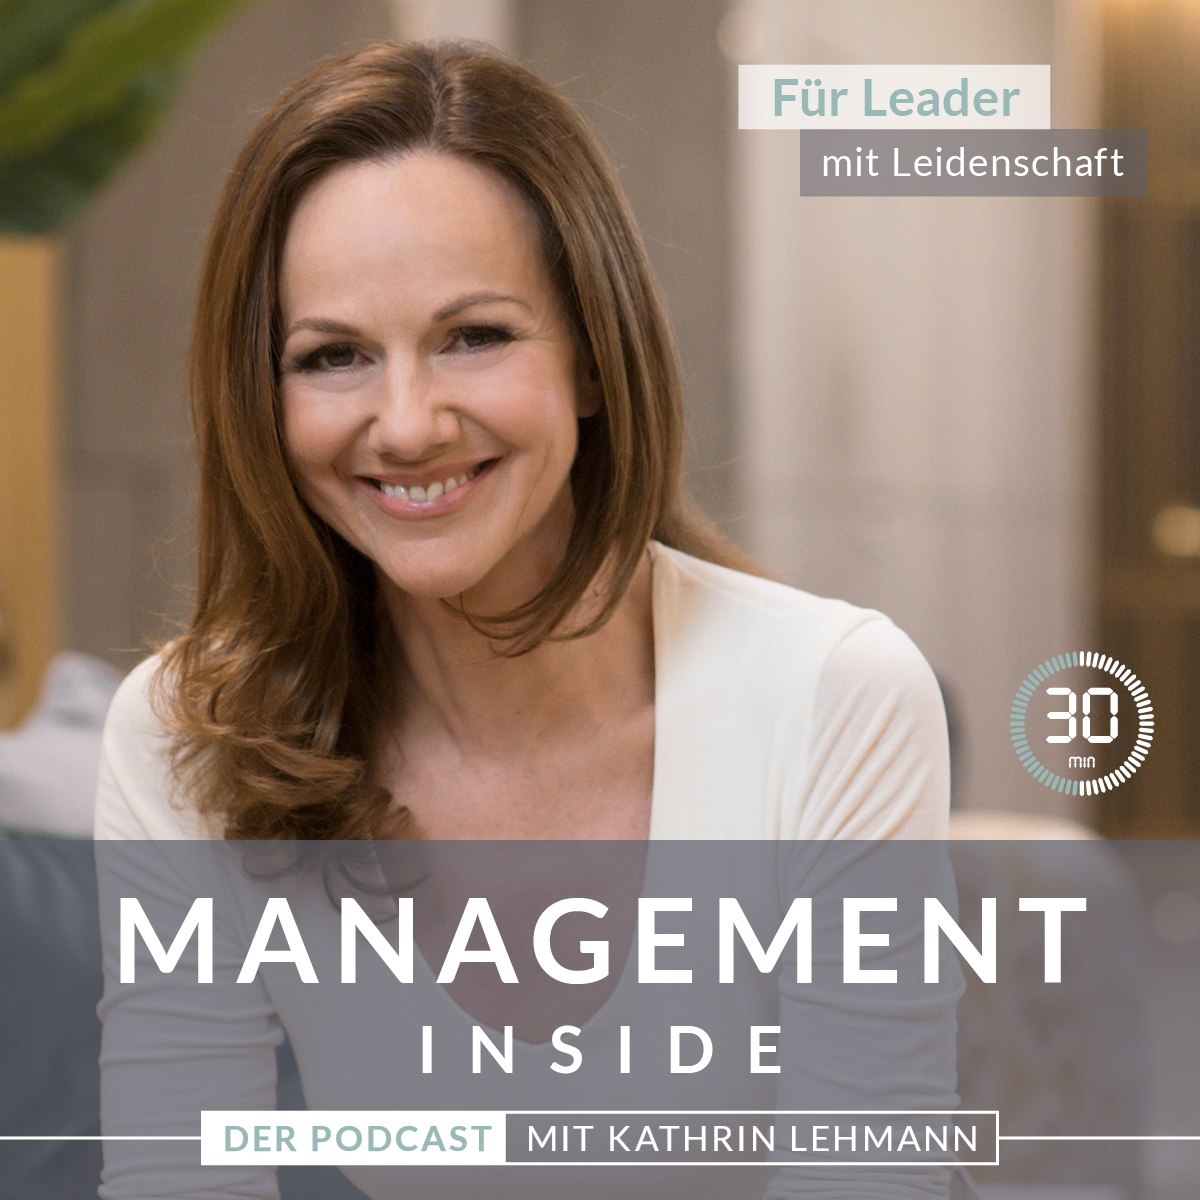 Podcast Management Inside mit Kathrin Lehmann